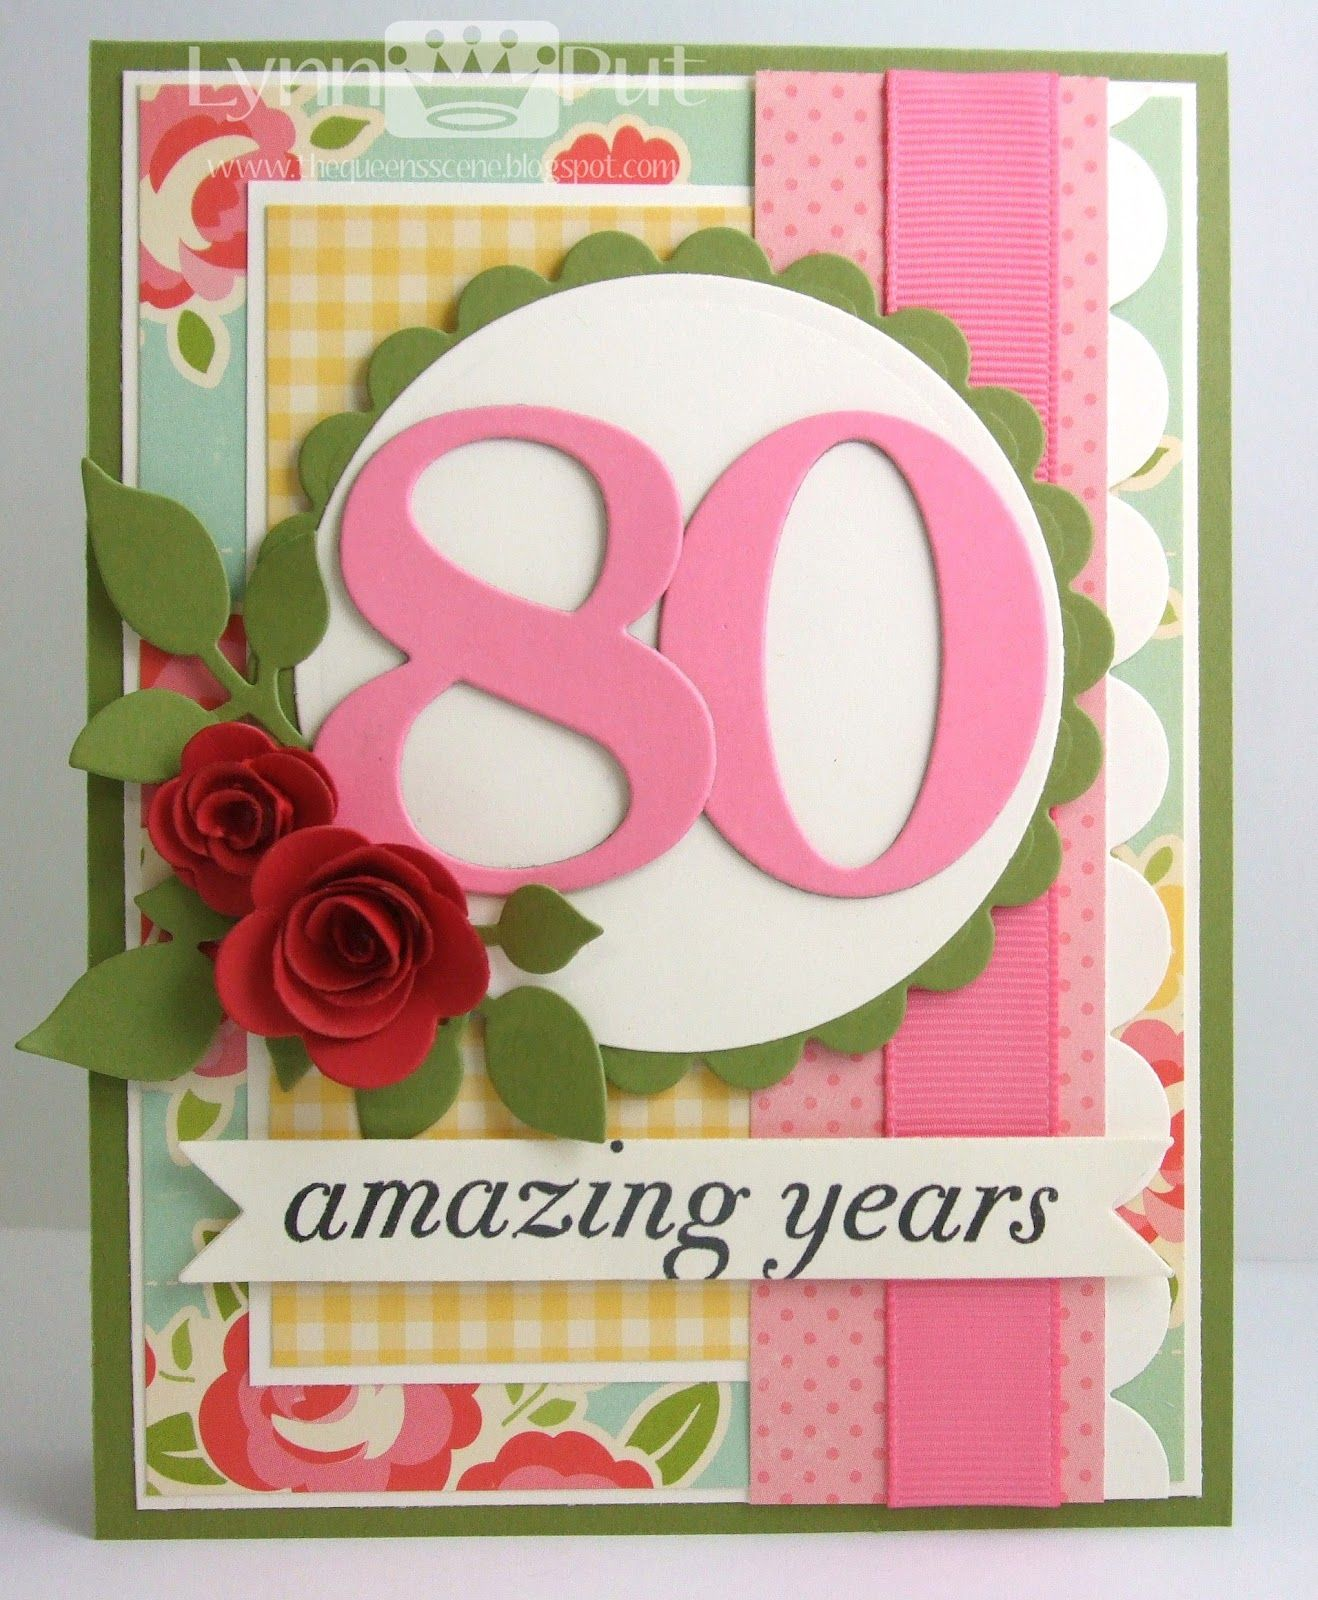 The Queens Scene Big Birthday Wishes 80th Cards Handmade Greeting